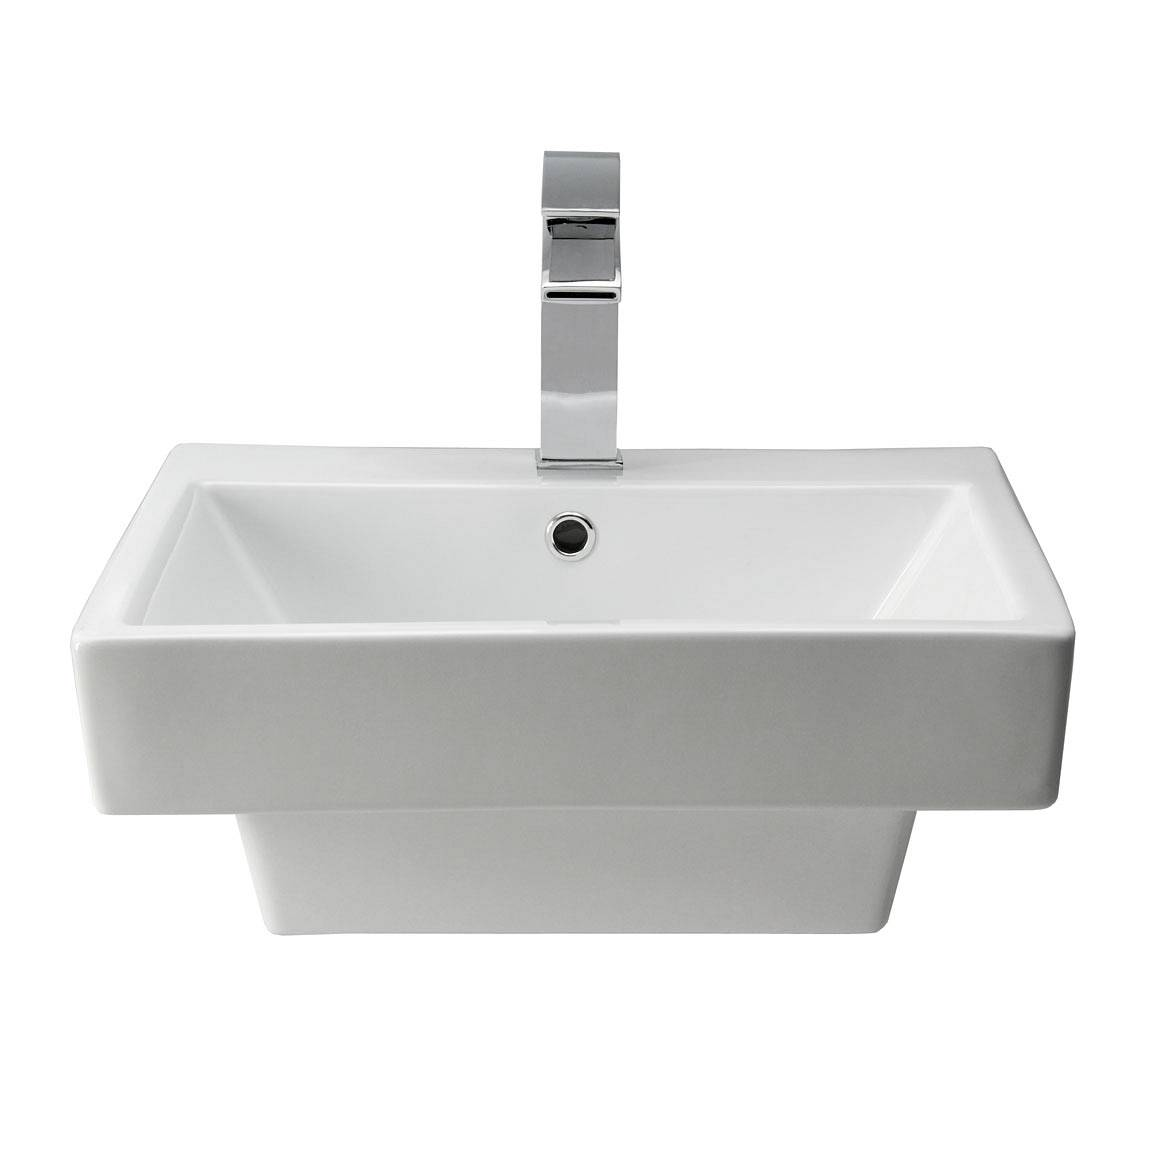 Image of Marcos Counter Top Basin PLUS Waste